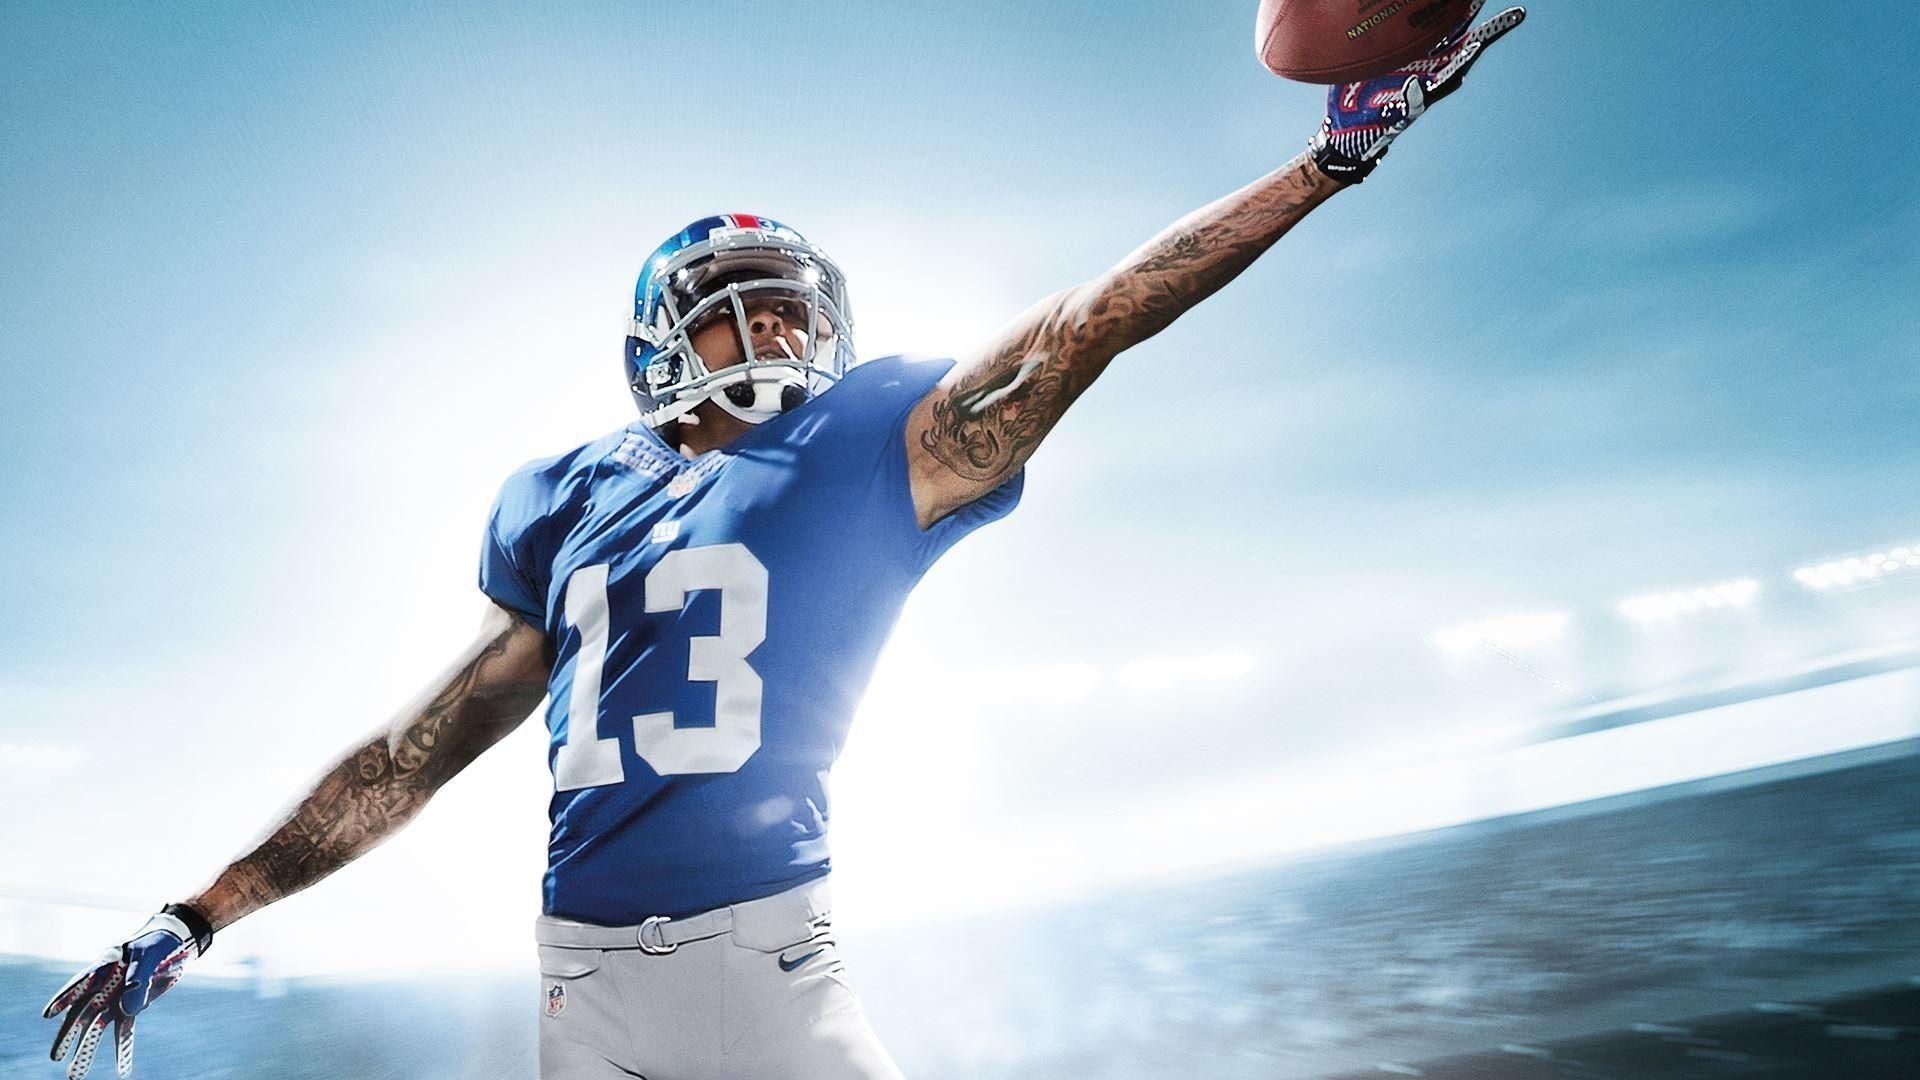 Odell Wallpapers - Wallpaper Cave